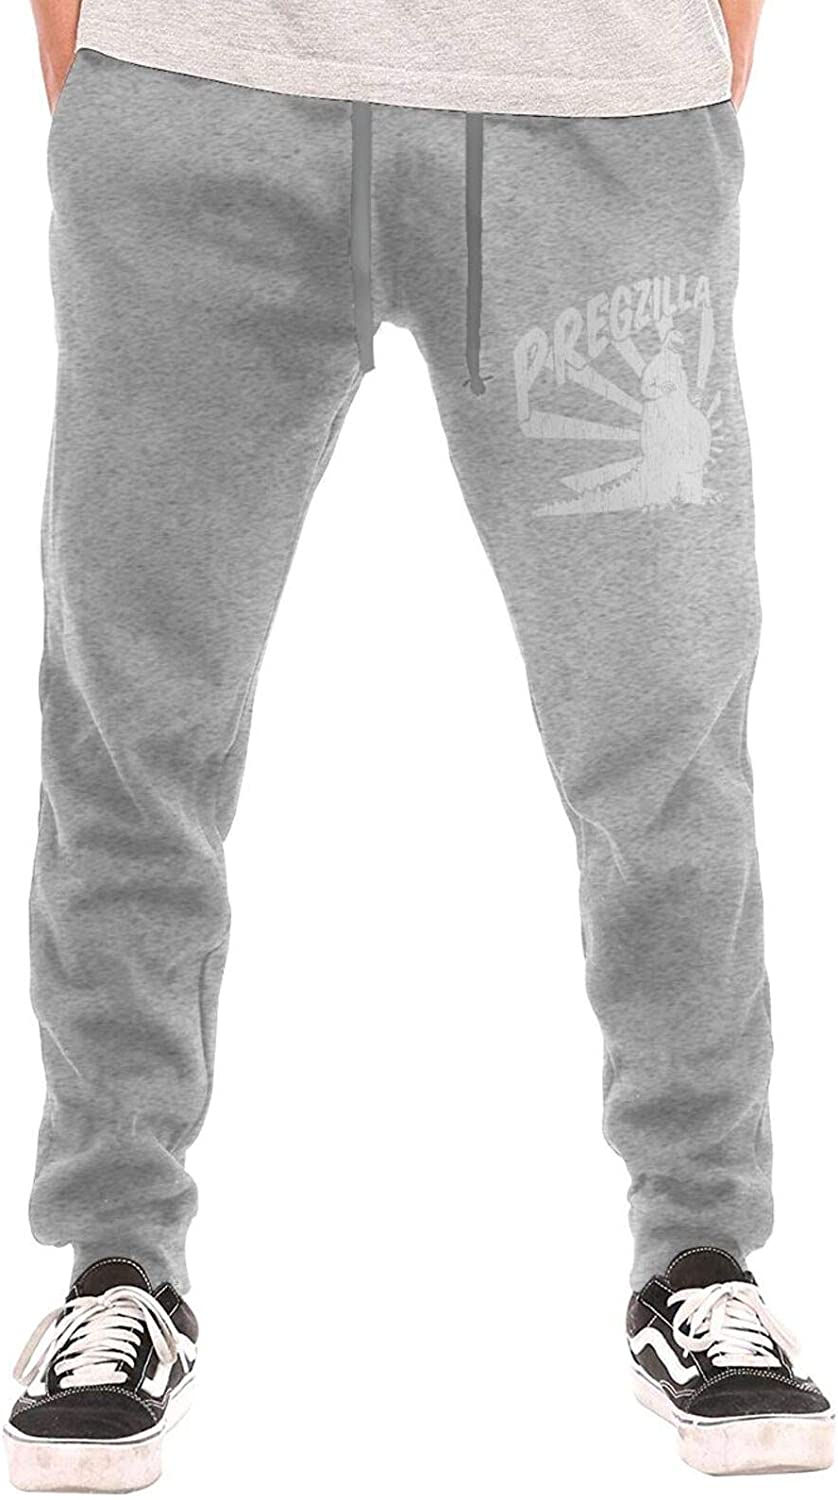 Shanghao Pregzilla Beauty products Men's Long Pants Sweatpants Casual Sale special price